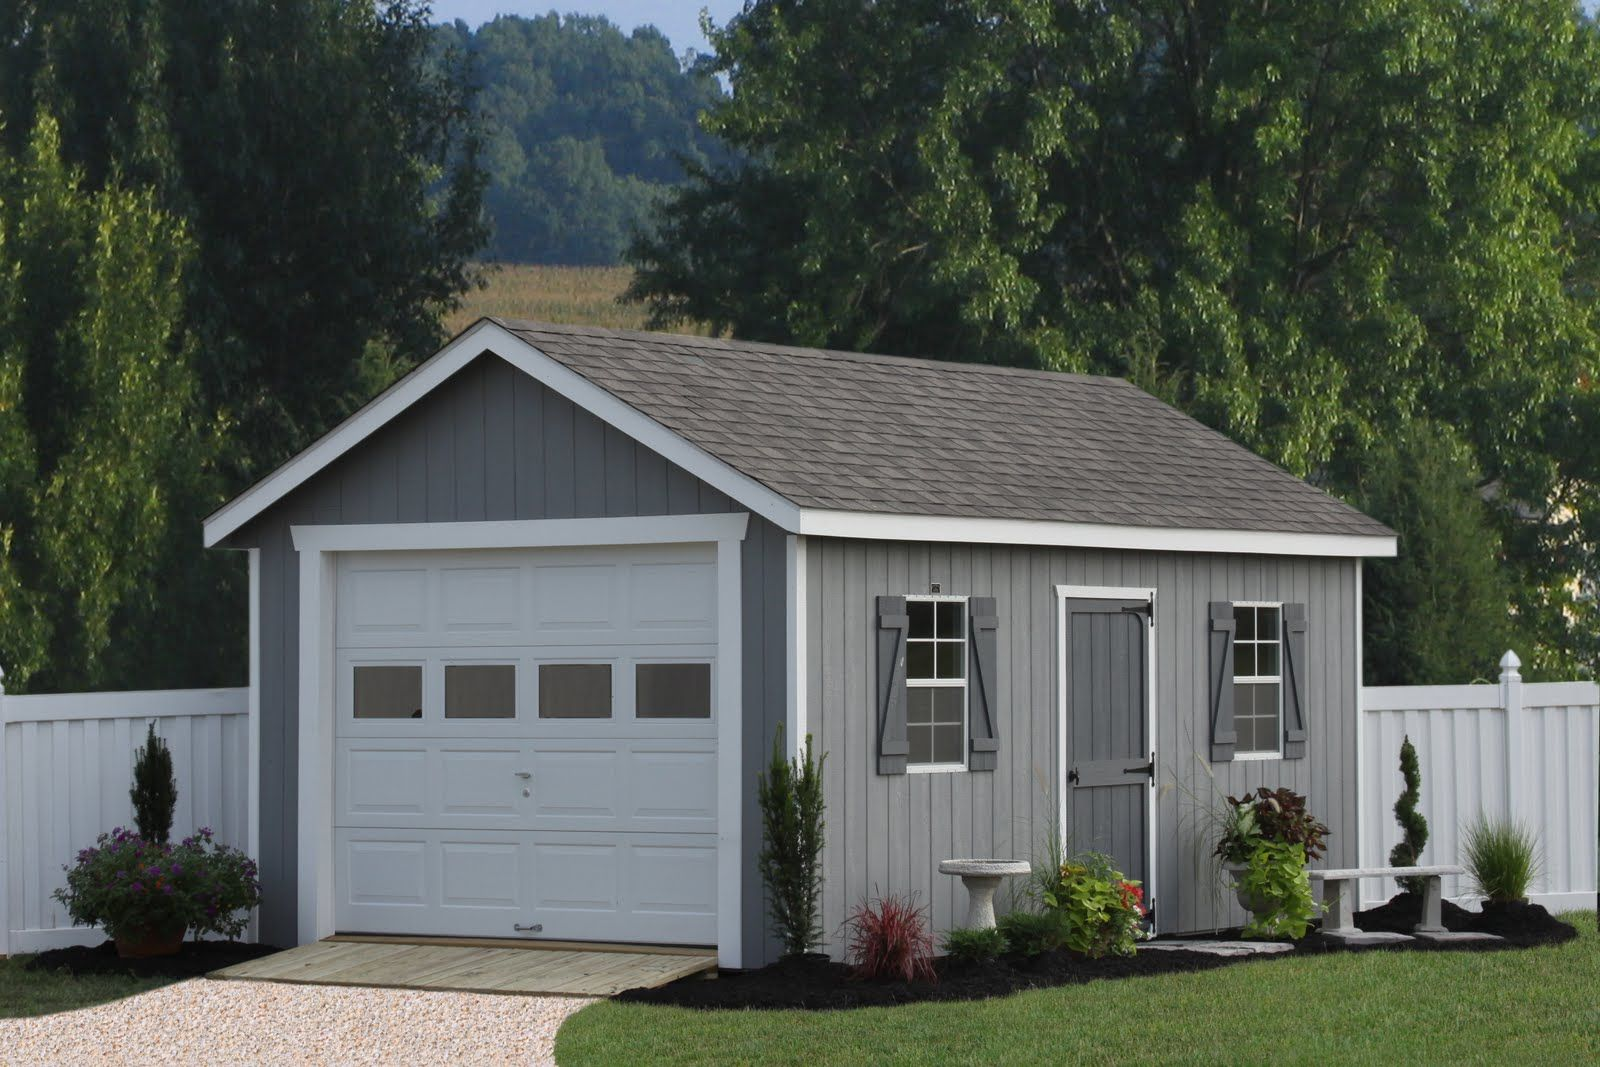 Add on garage plans 12x20 classic one car garage for 2 5 car garage cost